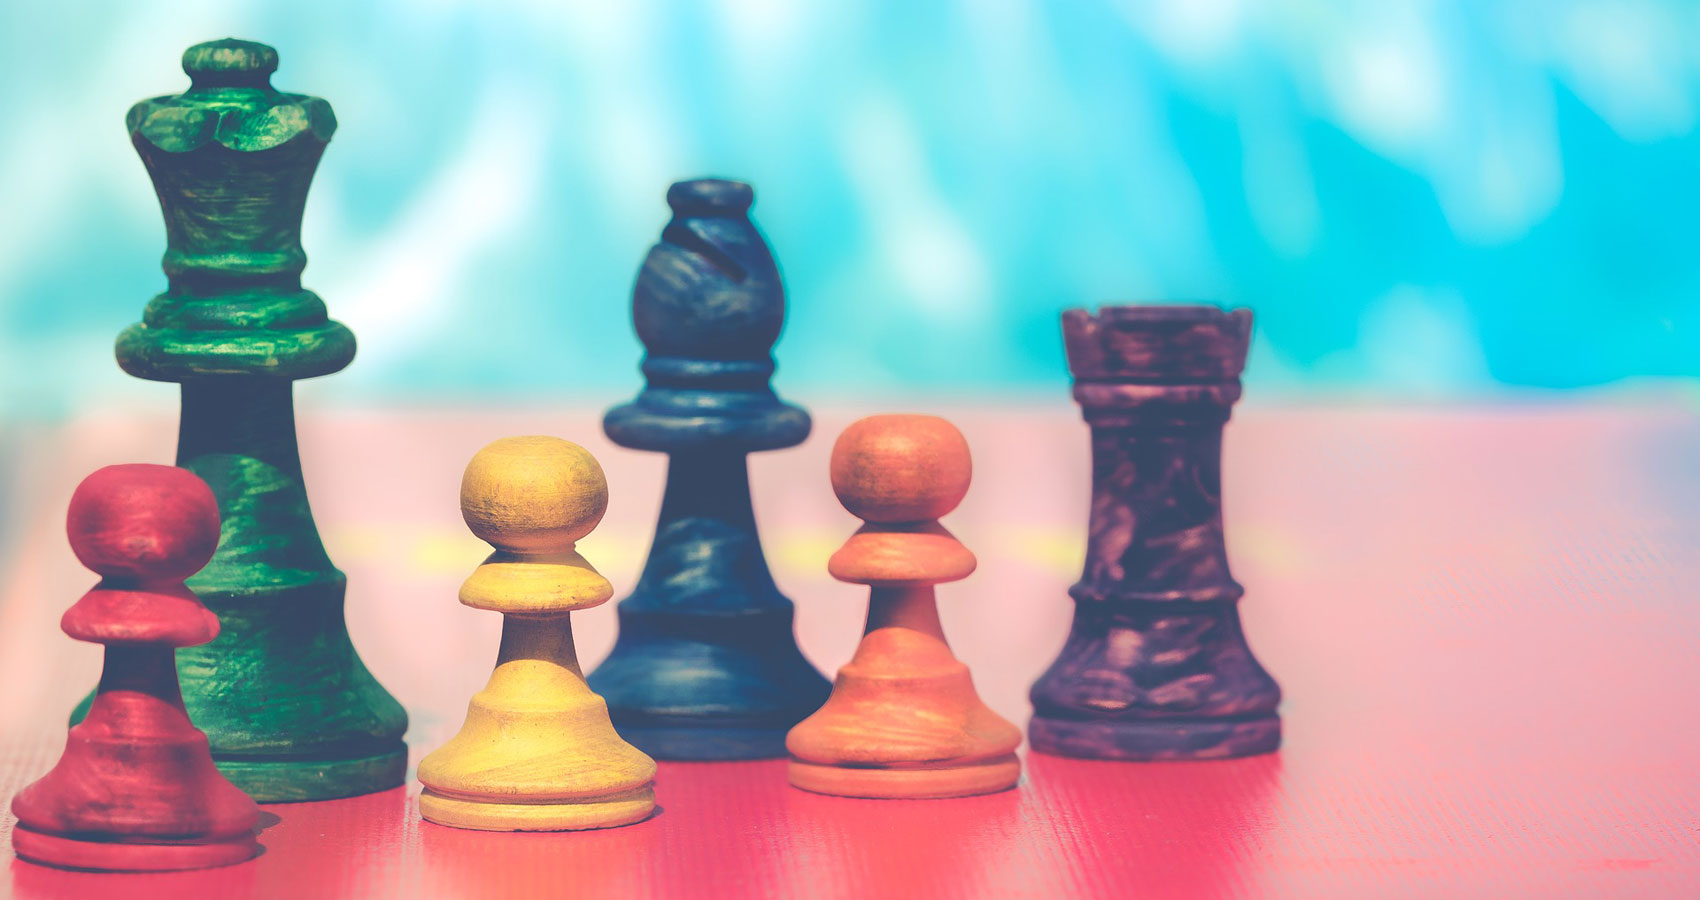 The Benefits of Playing Chess with Tyler, poetry by Marla Lacherza Bracco at Spillwords.com